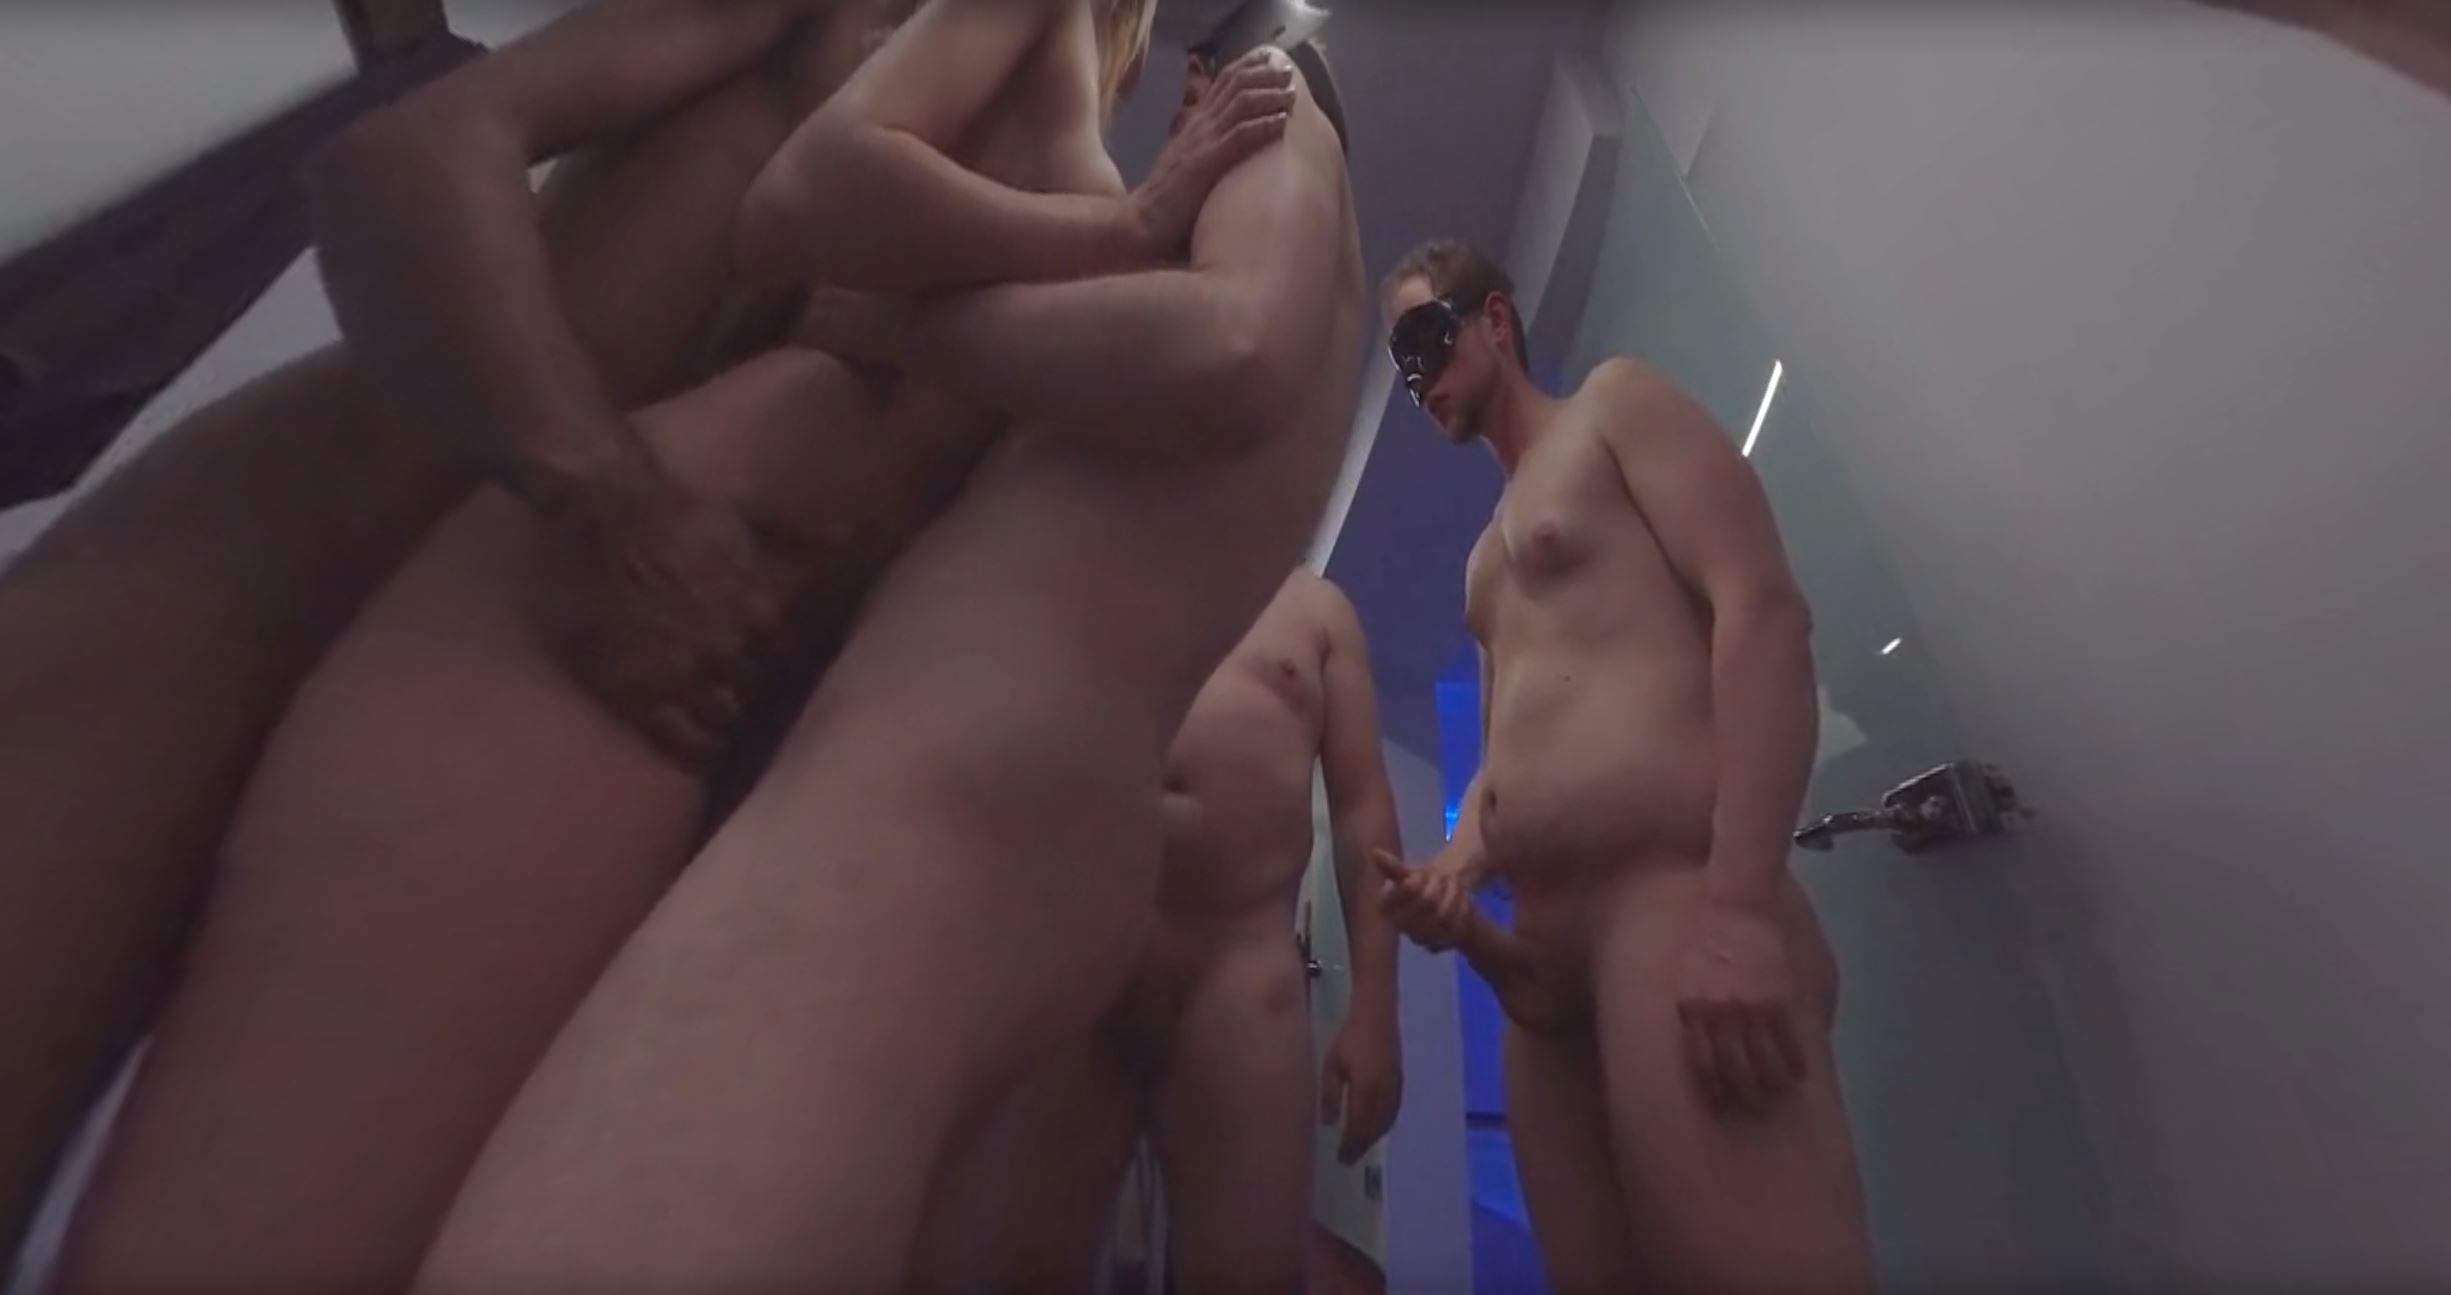 Drilled missionary spy gangbang